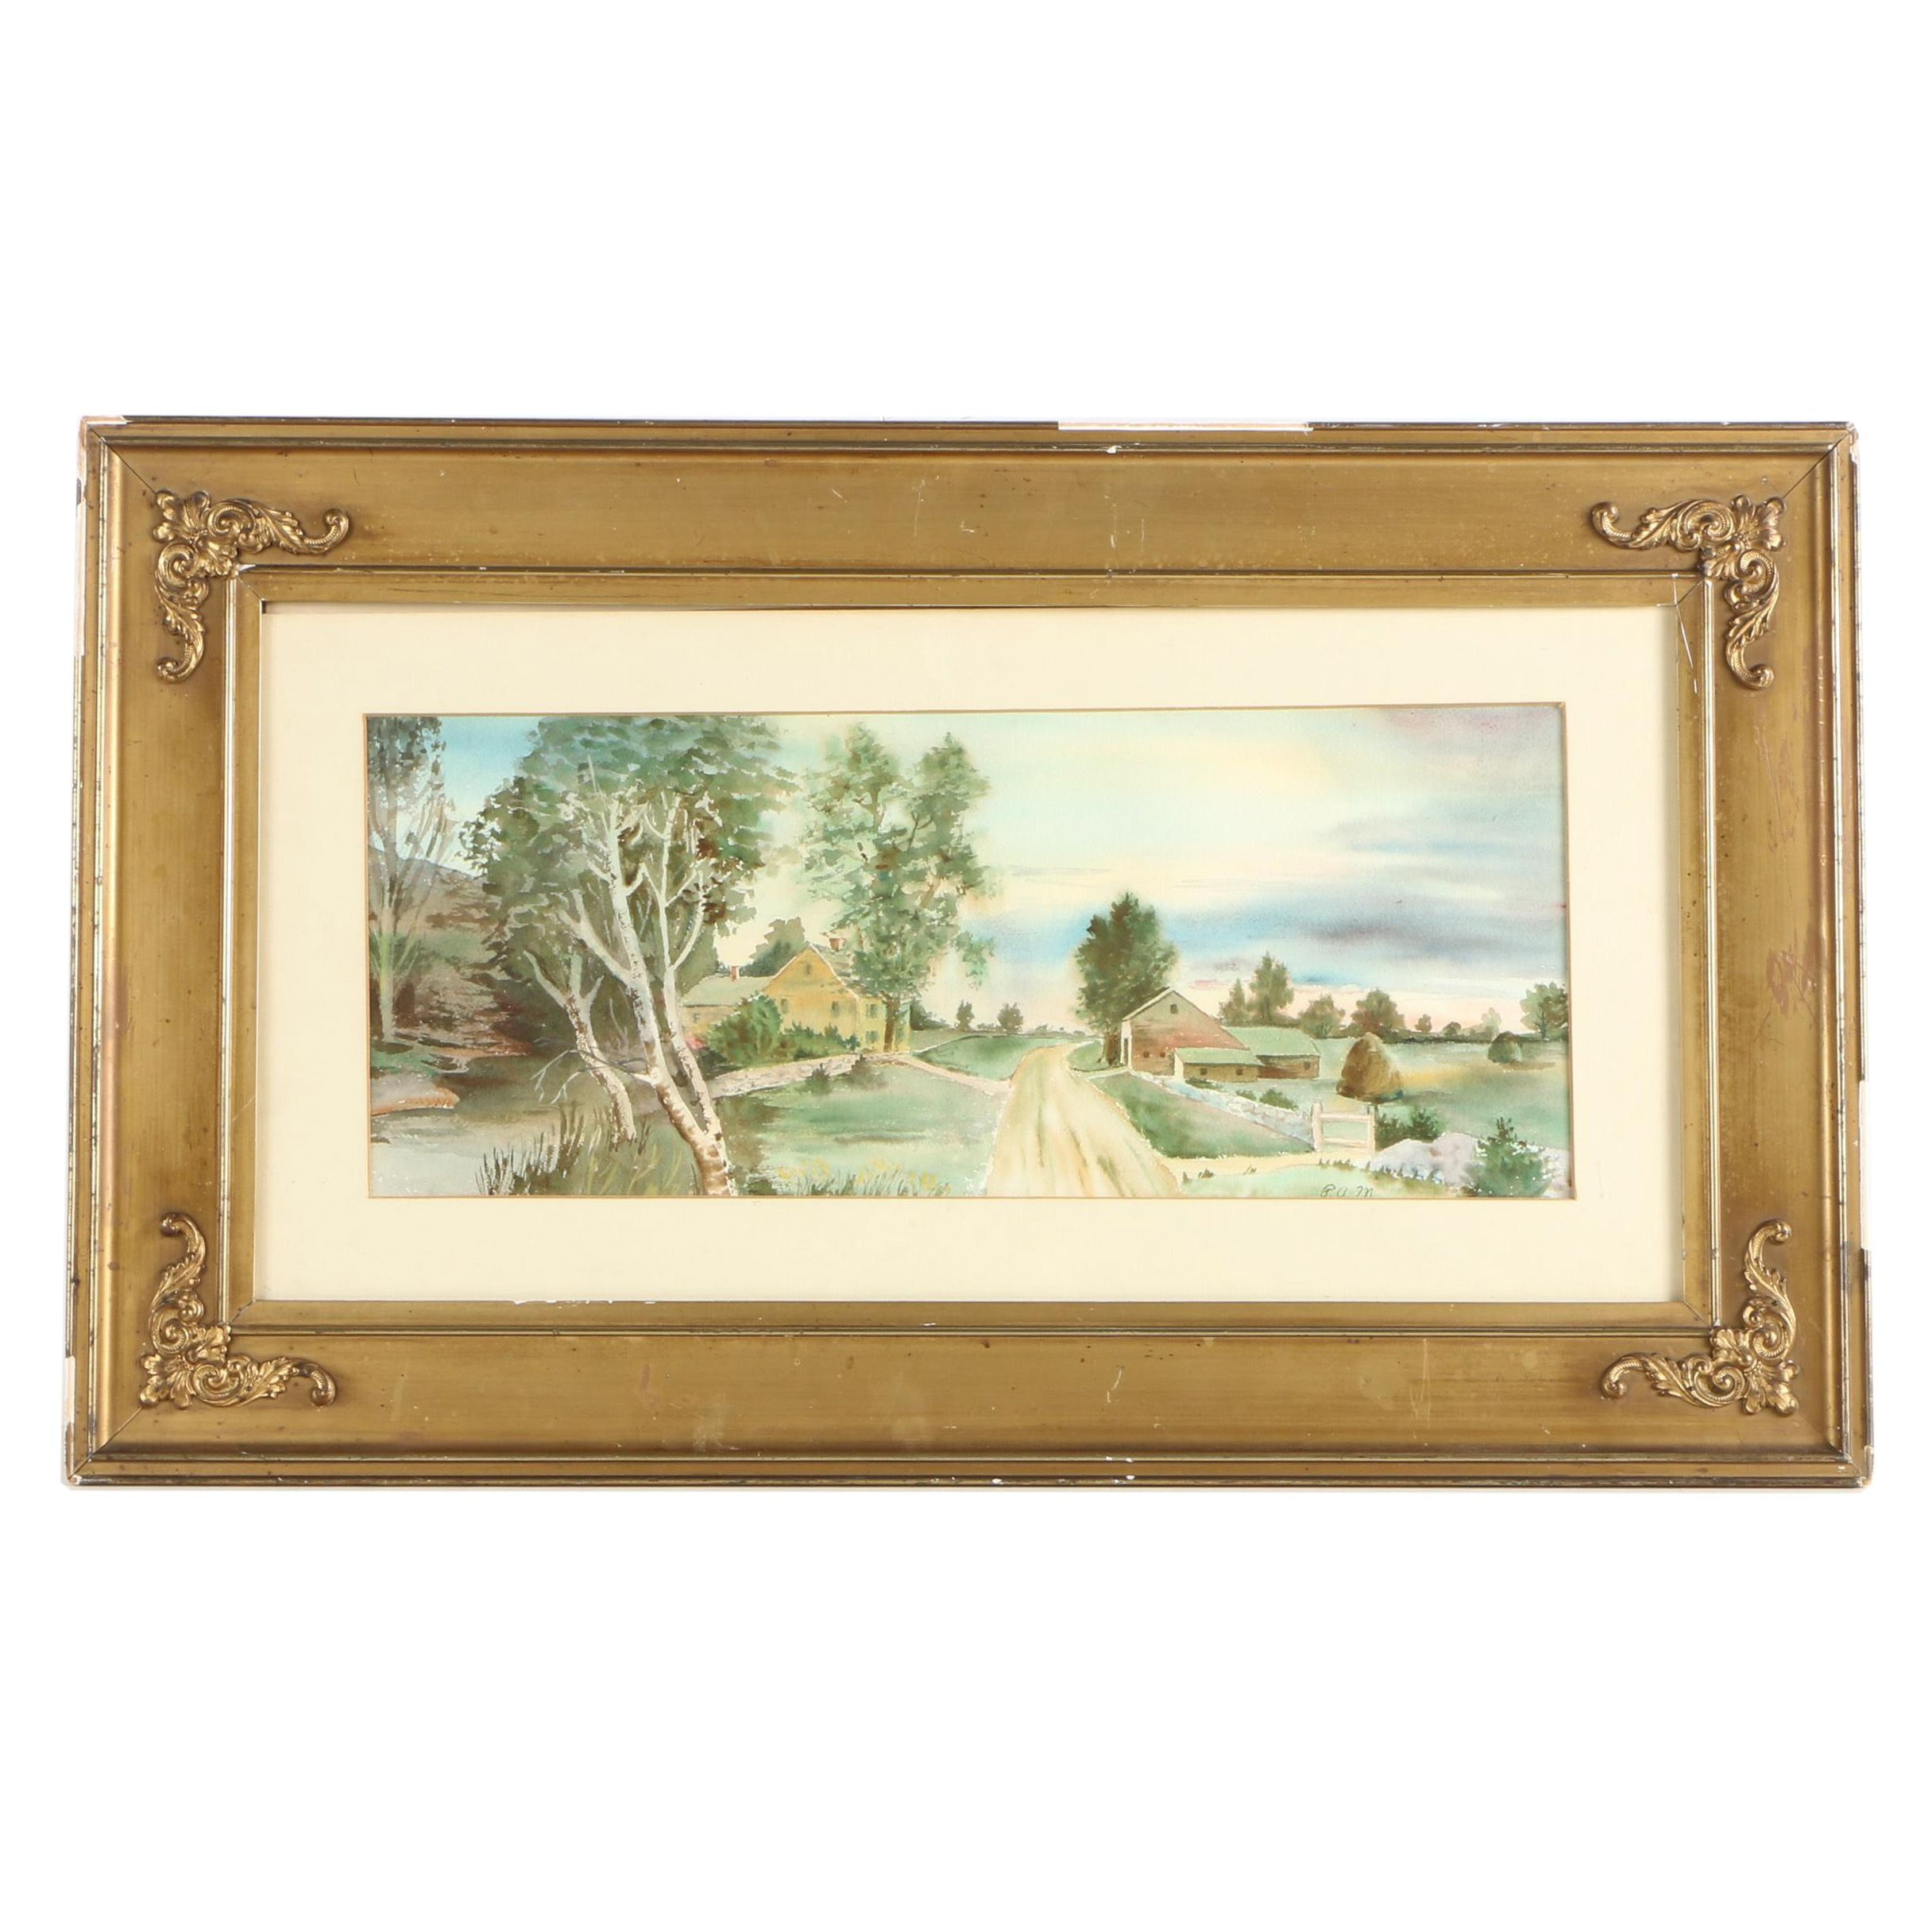 P.A.M. Watercolor Painting of a Rural Landscape